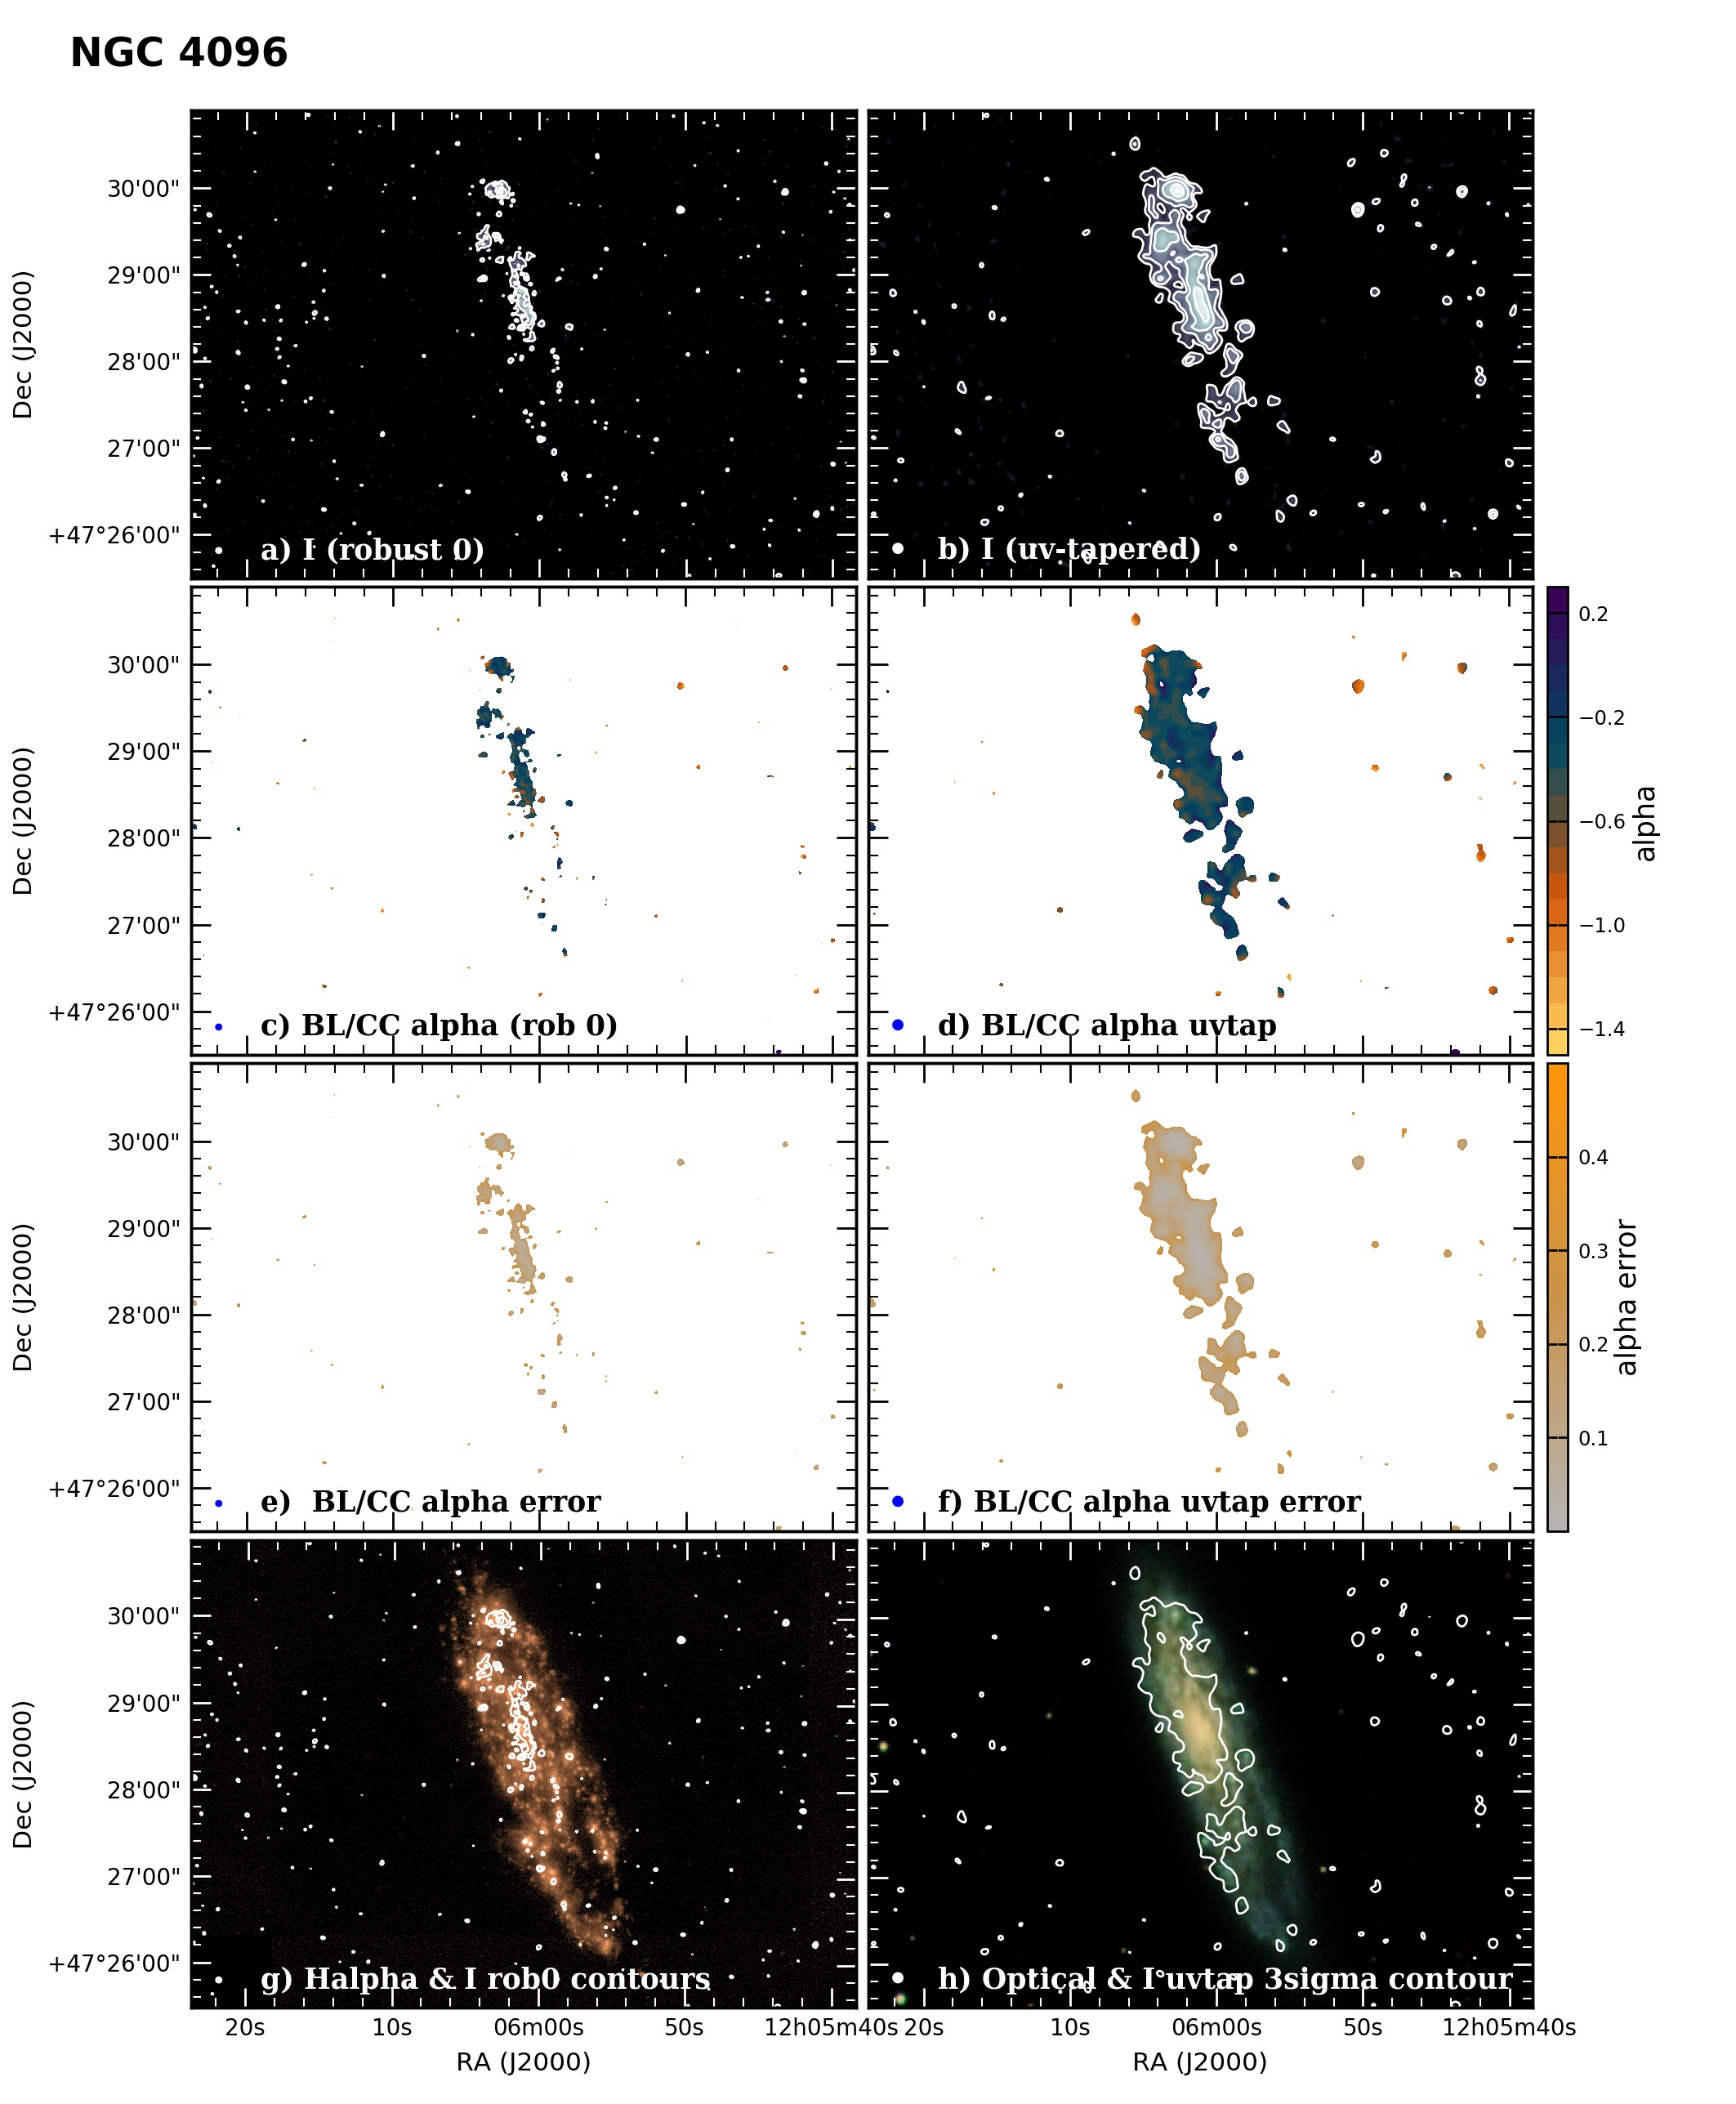 Panel image of NGC4096 from B configuration data release III (Irwin et al. 2019)